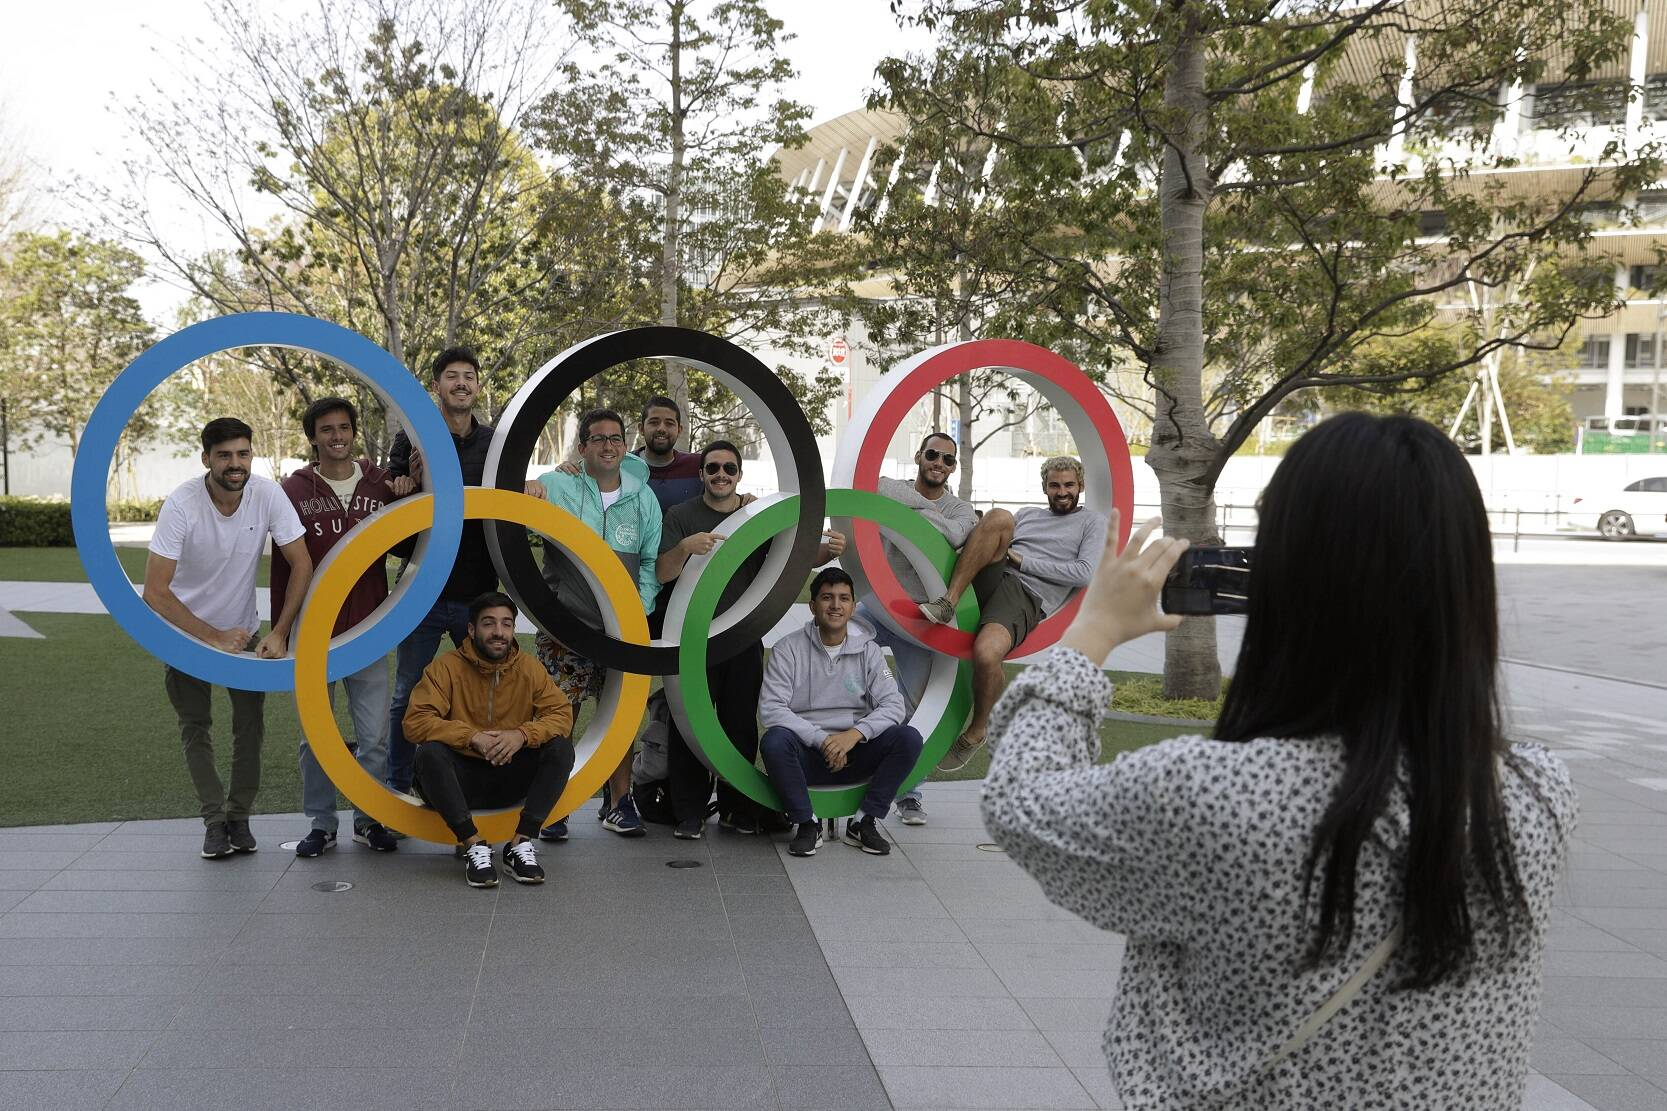 A group of students from Uruguay pose for a souvenir picture on the Olympic Rings set outside the Olympic Stadium in Tokyo, Saturday, March 21, 2020. (AP Photo/Gregorio Borgia)